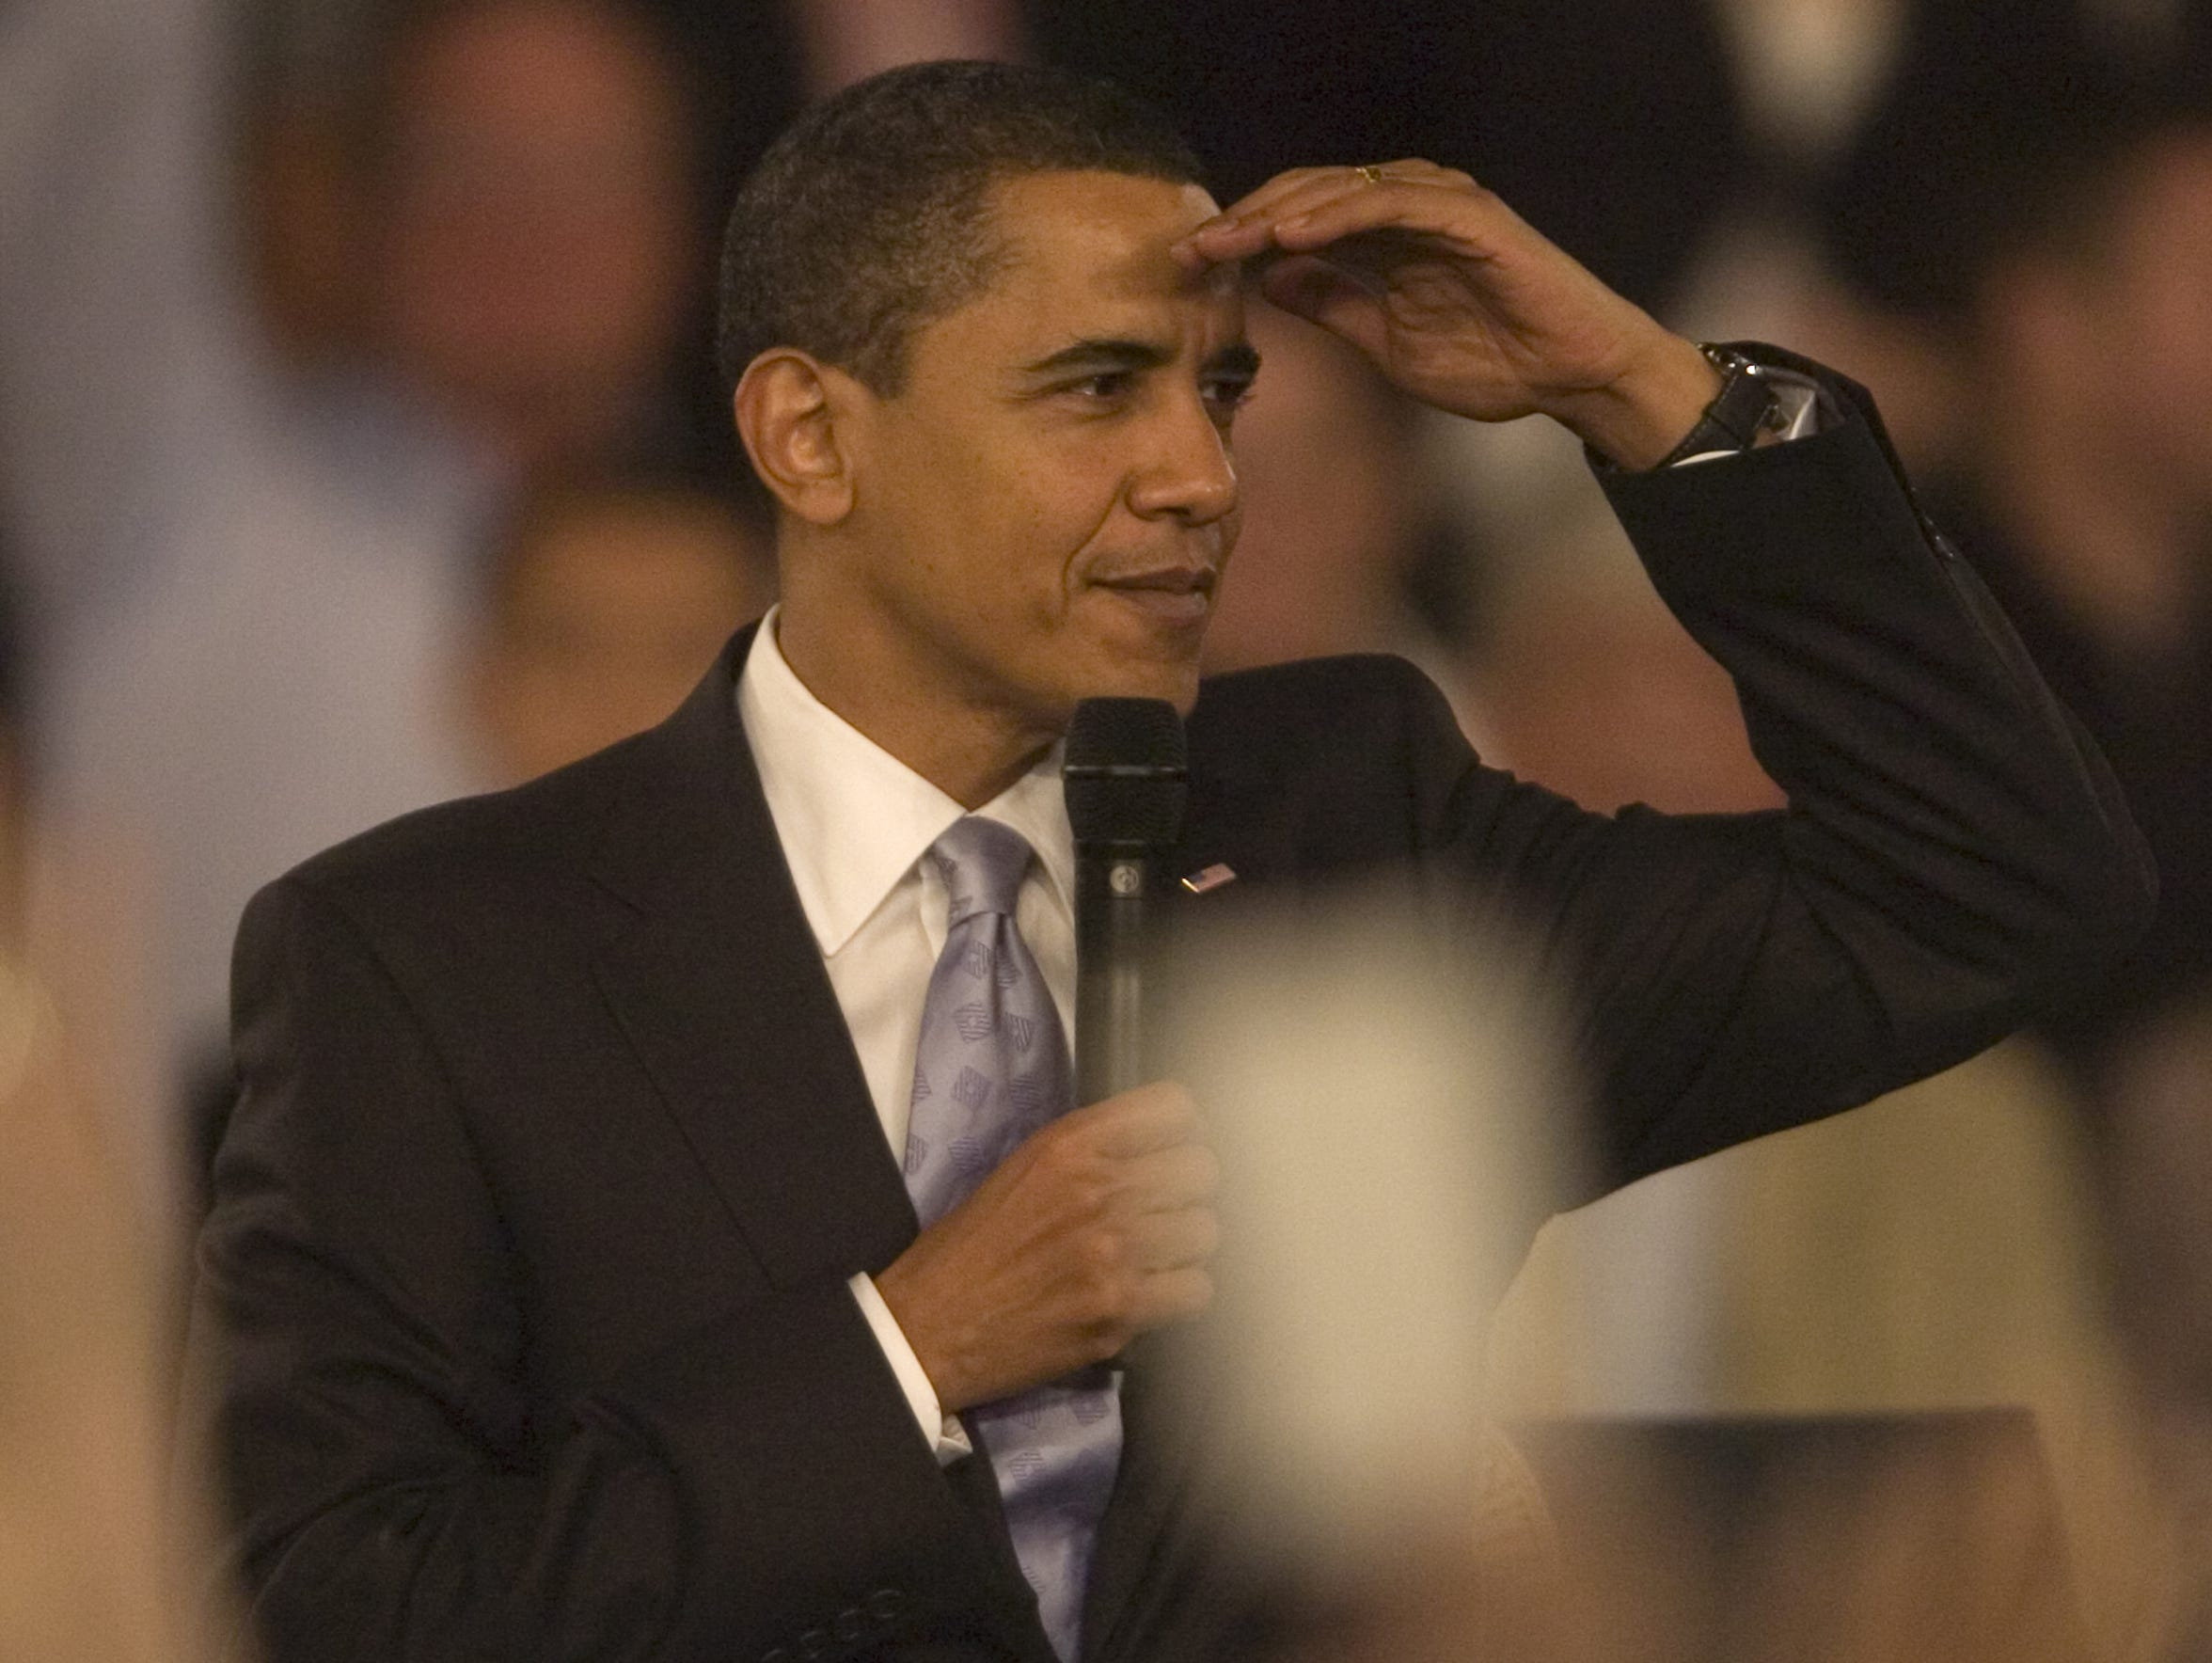 President Obama at Harborside Event Center during his